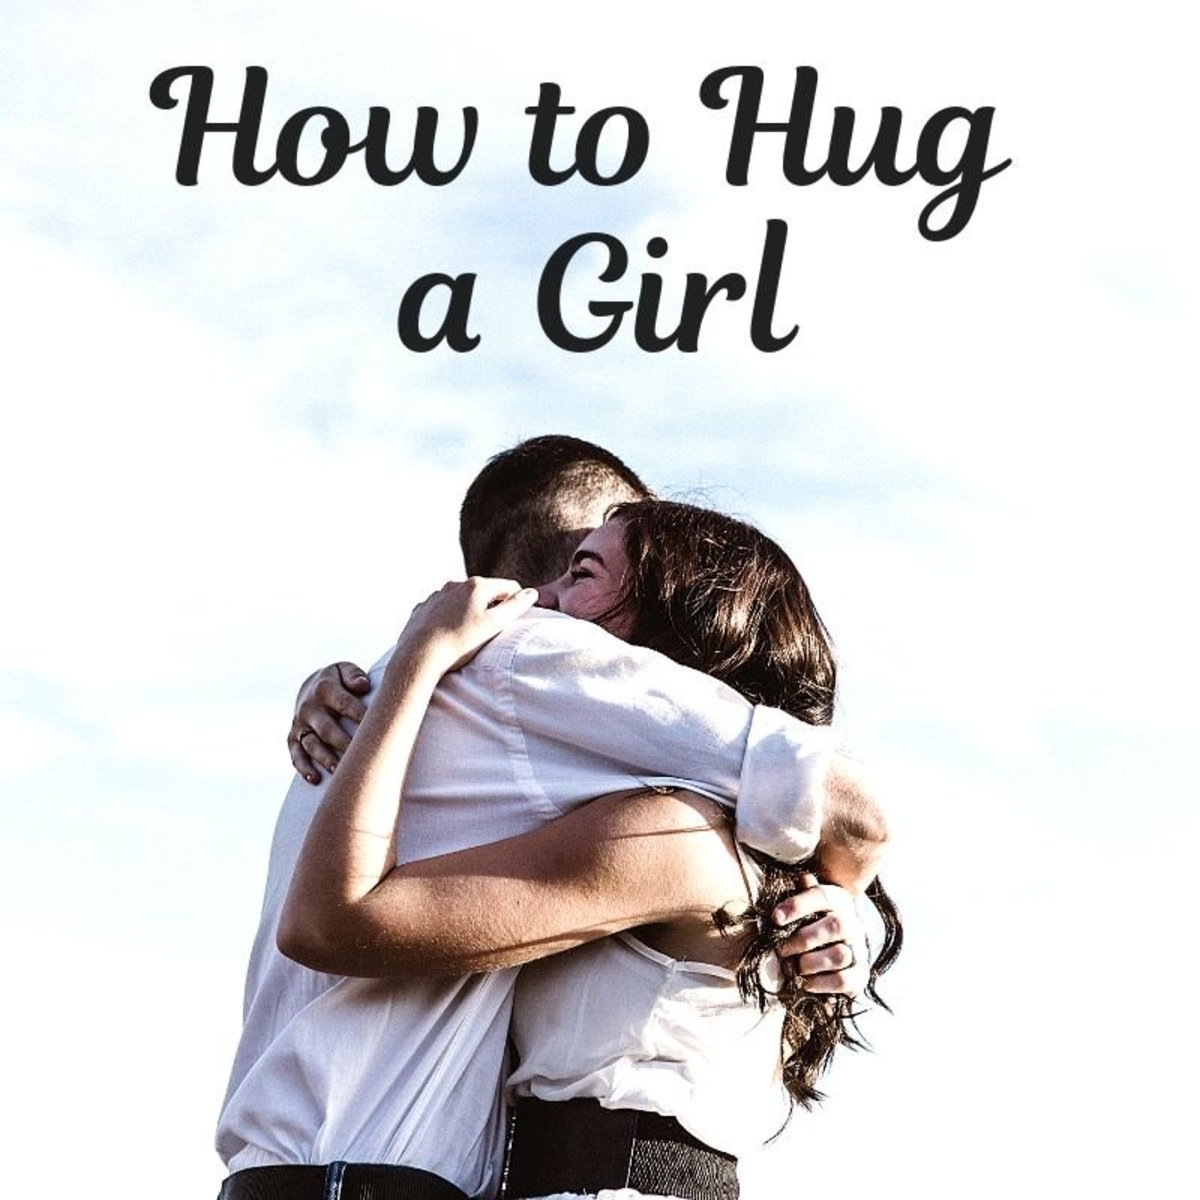 How to Hug a Girl: Tips for Shy Guys to Give Friendly and Romantic Hugs to Girls